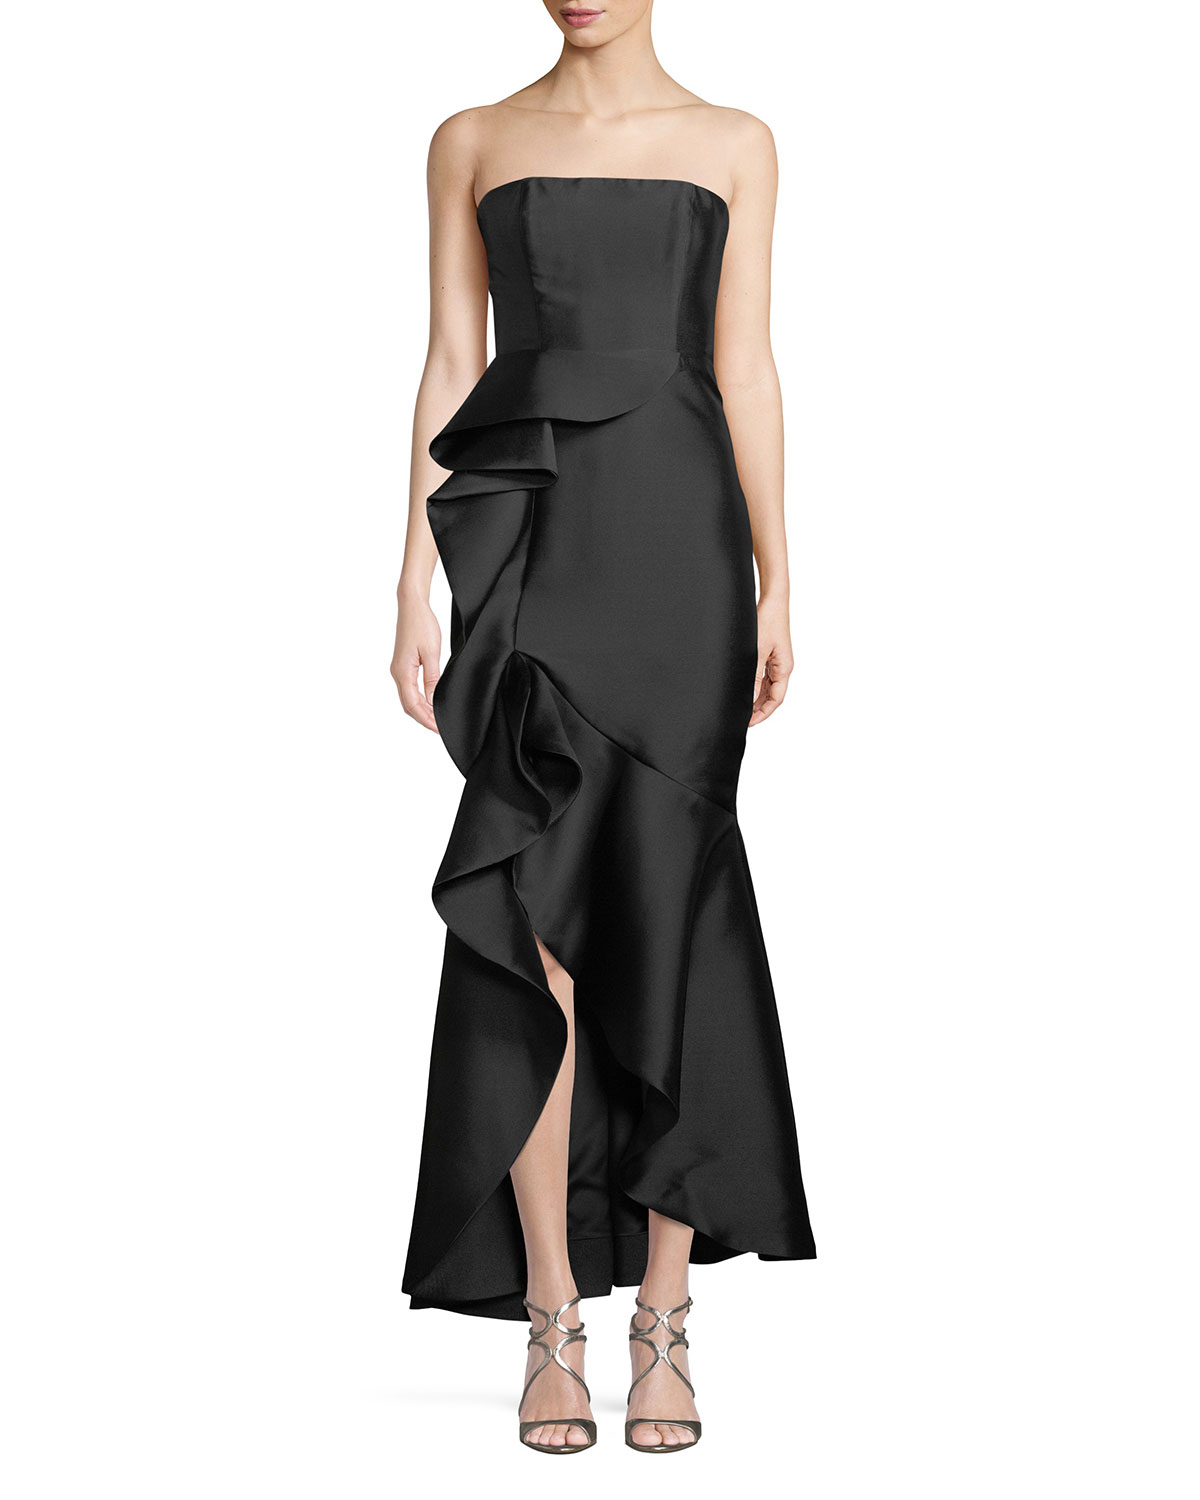 1e6edebd6689 Fame and Partners The Seller Twill Strapless Bustier Gown w/ Side Ruffle